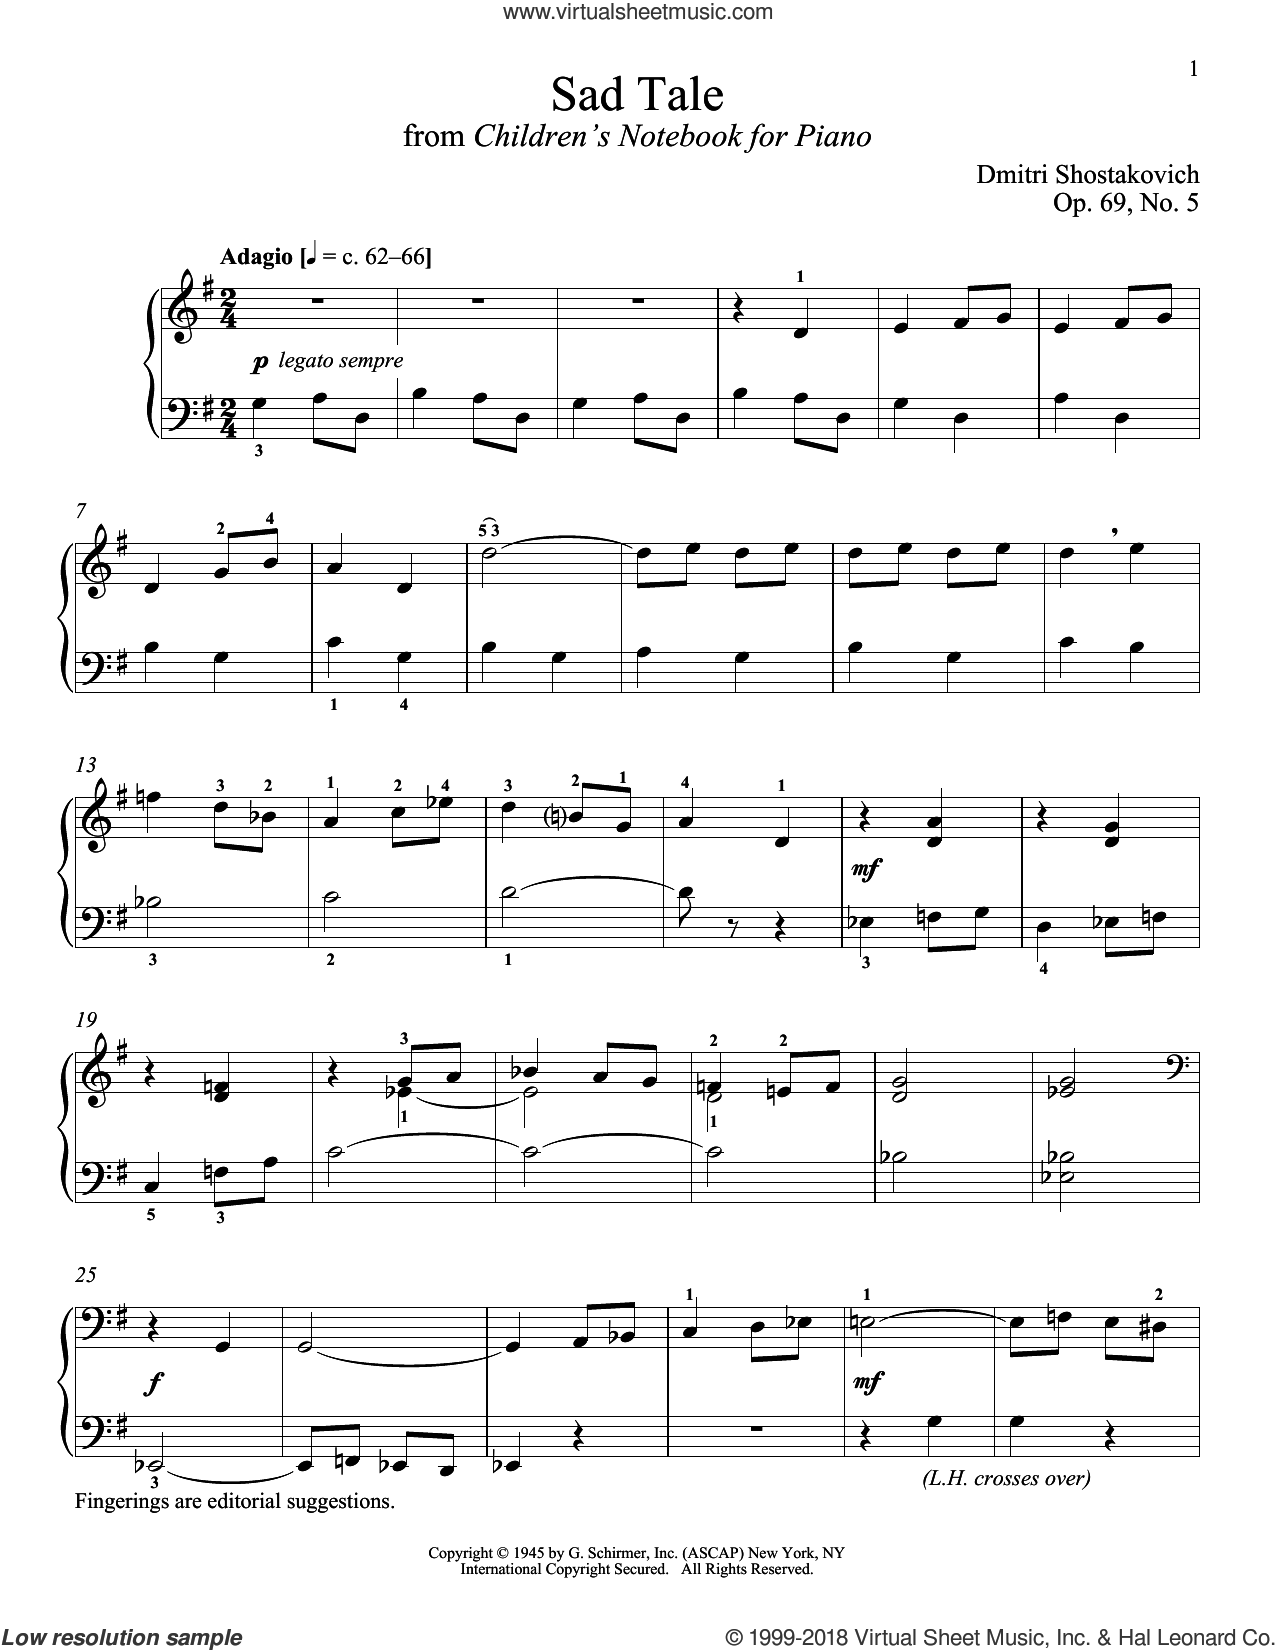 Sad Tale sheet music for piano solo by Dmitri Shostakovich and Richard Walters, classical score, intermediate skill level